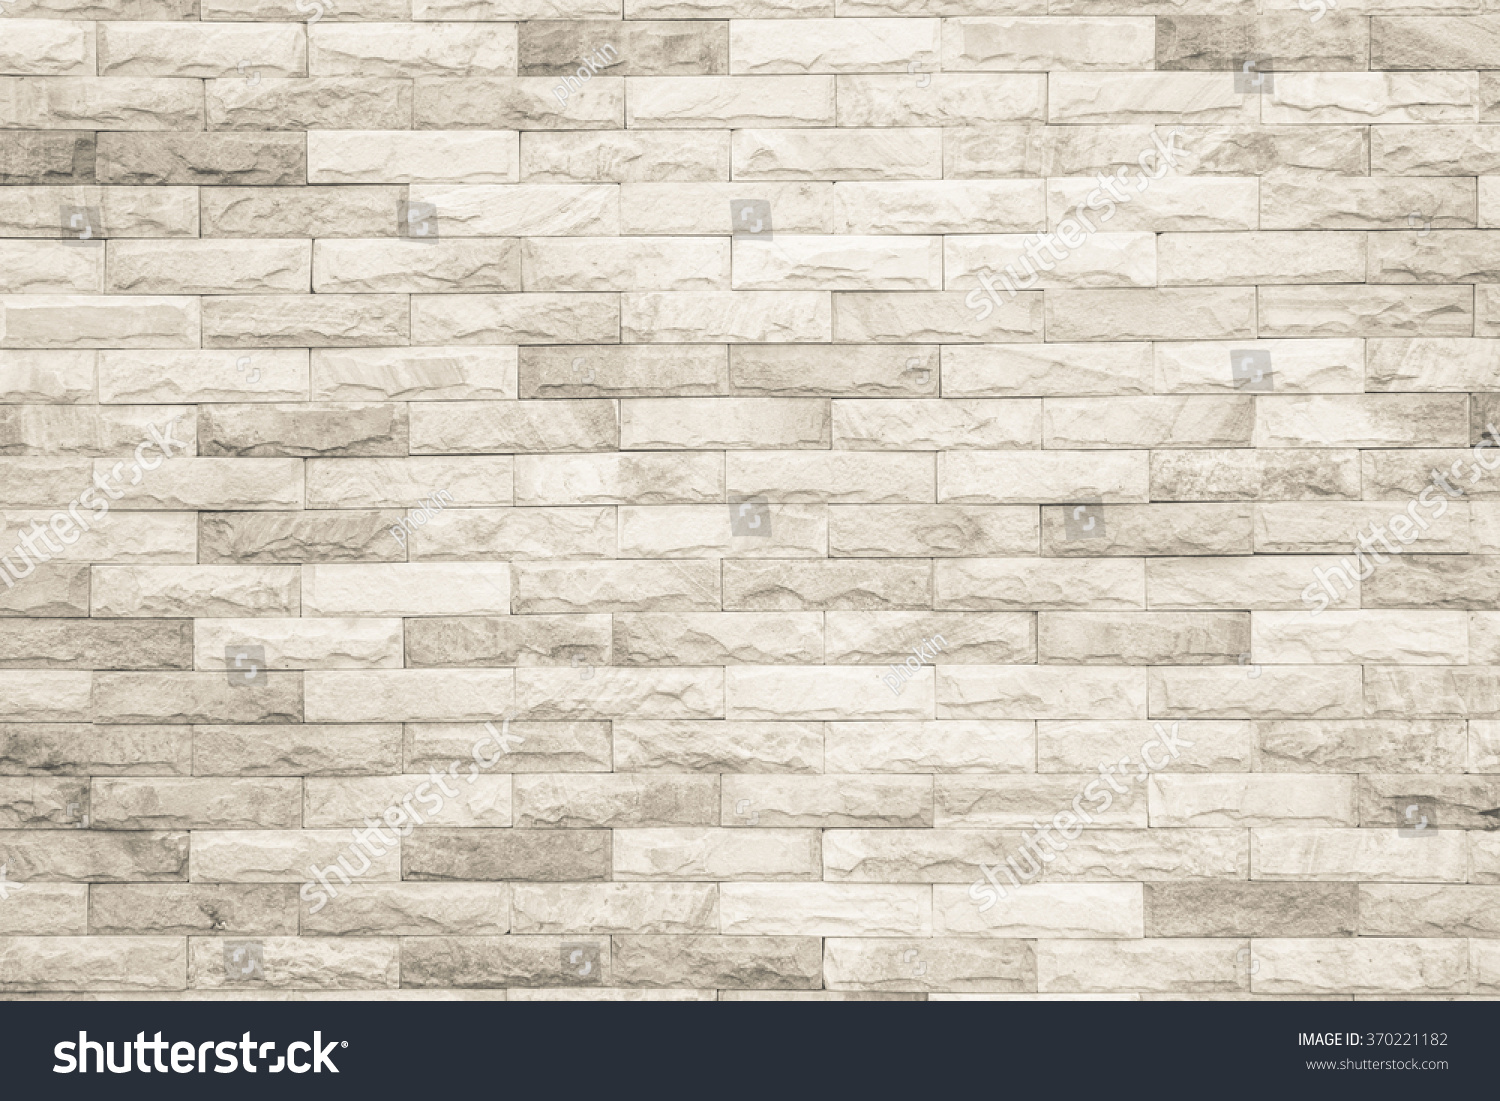 Black White Brick Wall Texture Background Stock Photo